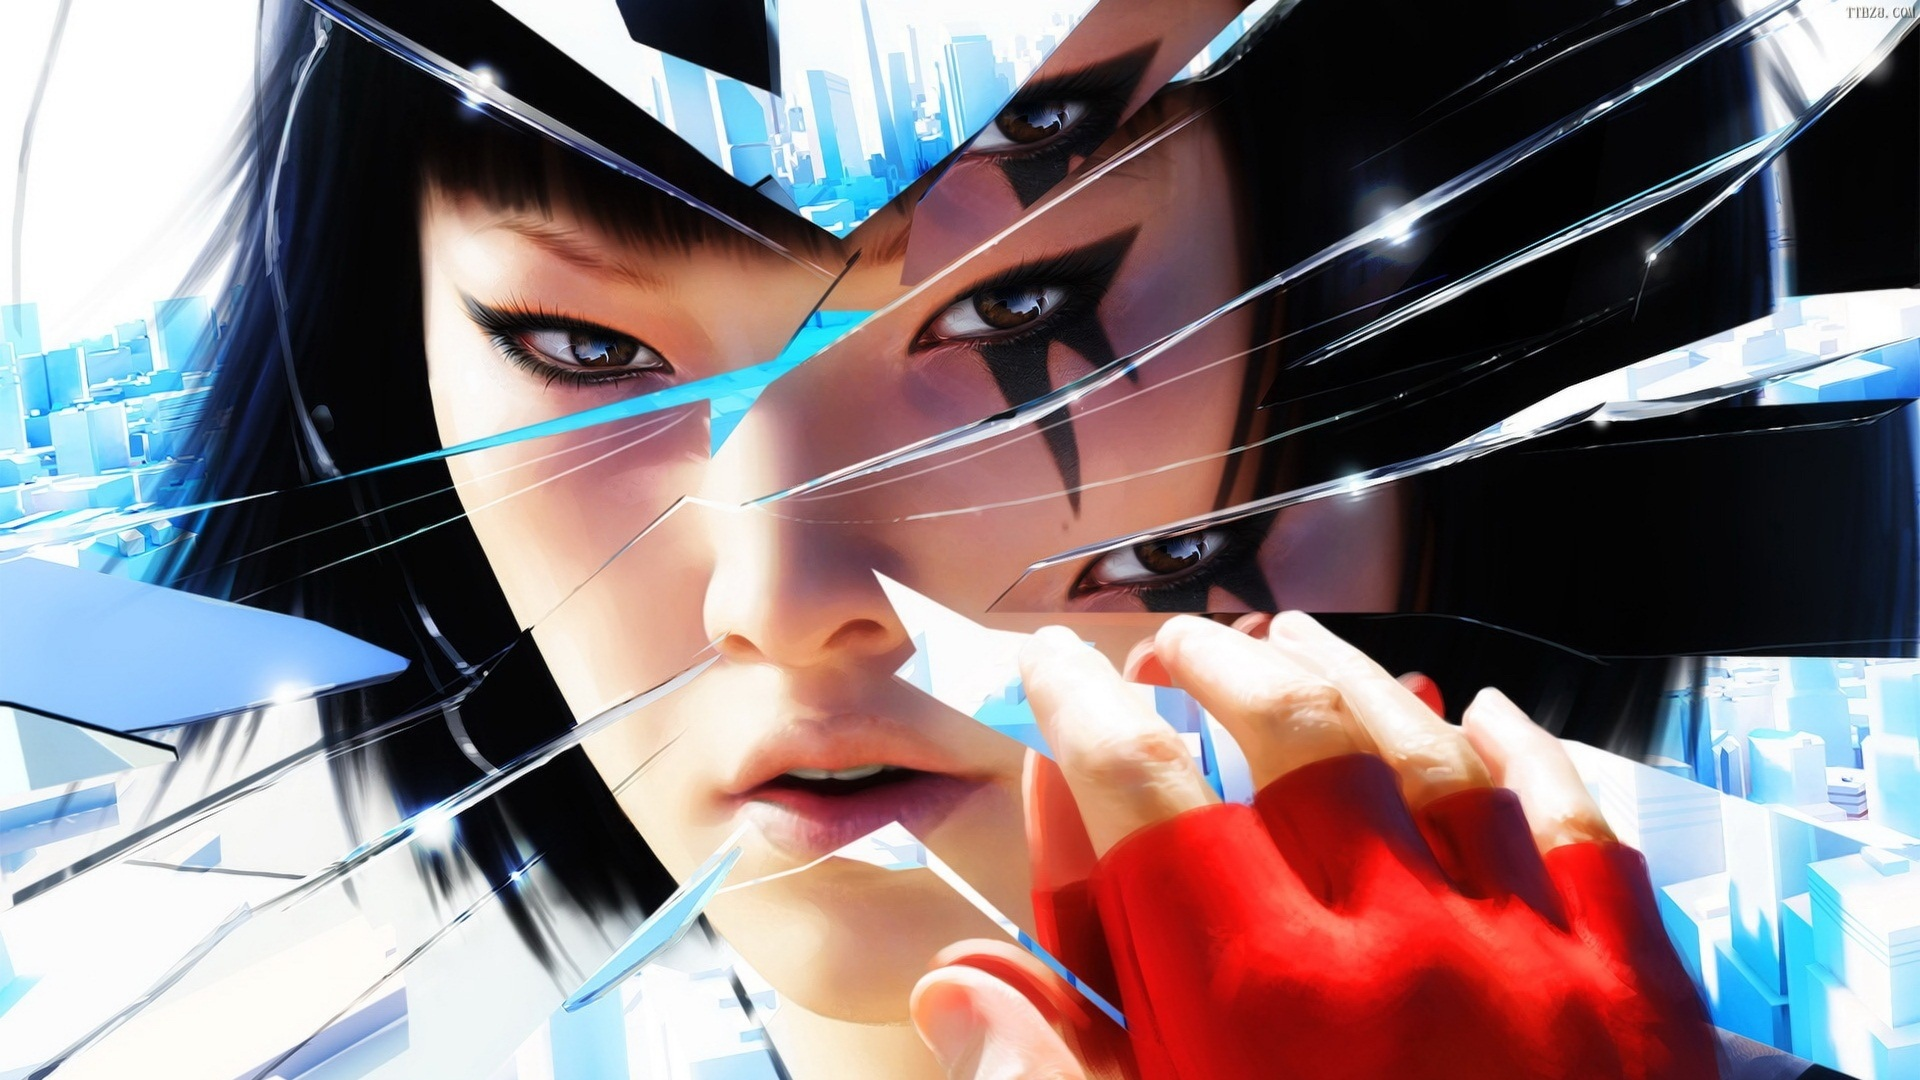 Mirror's Edge - Broken Reflection Wallpapers